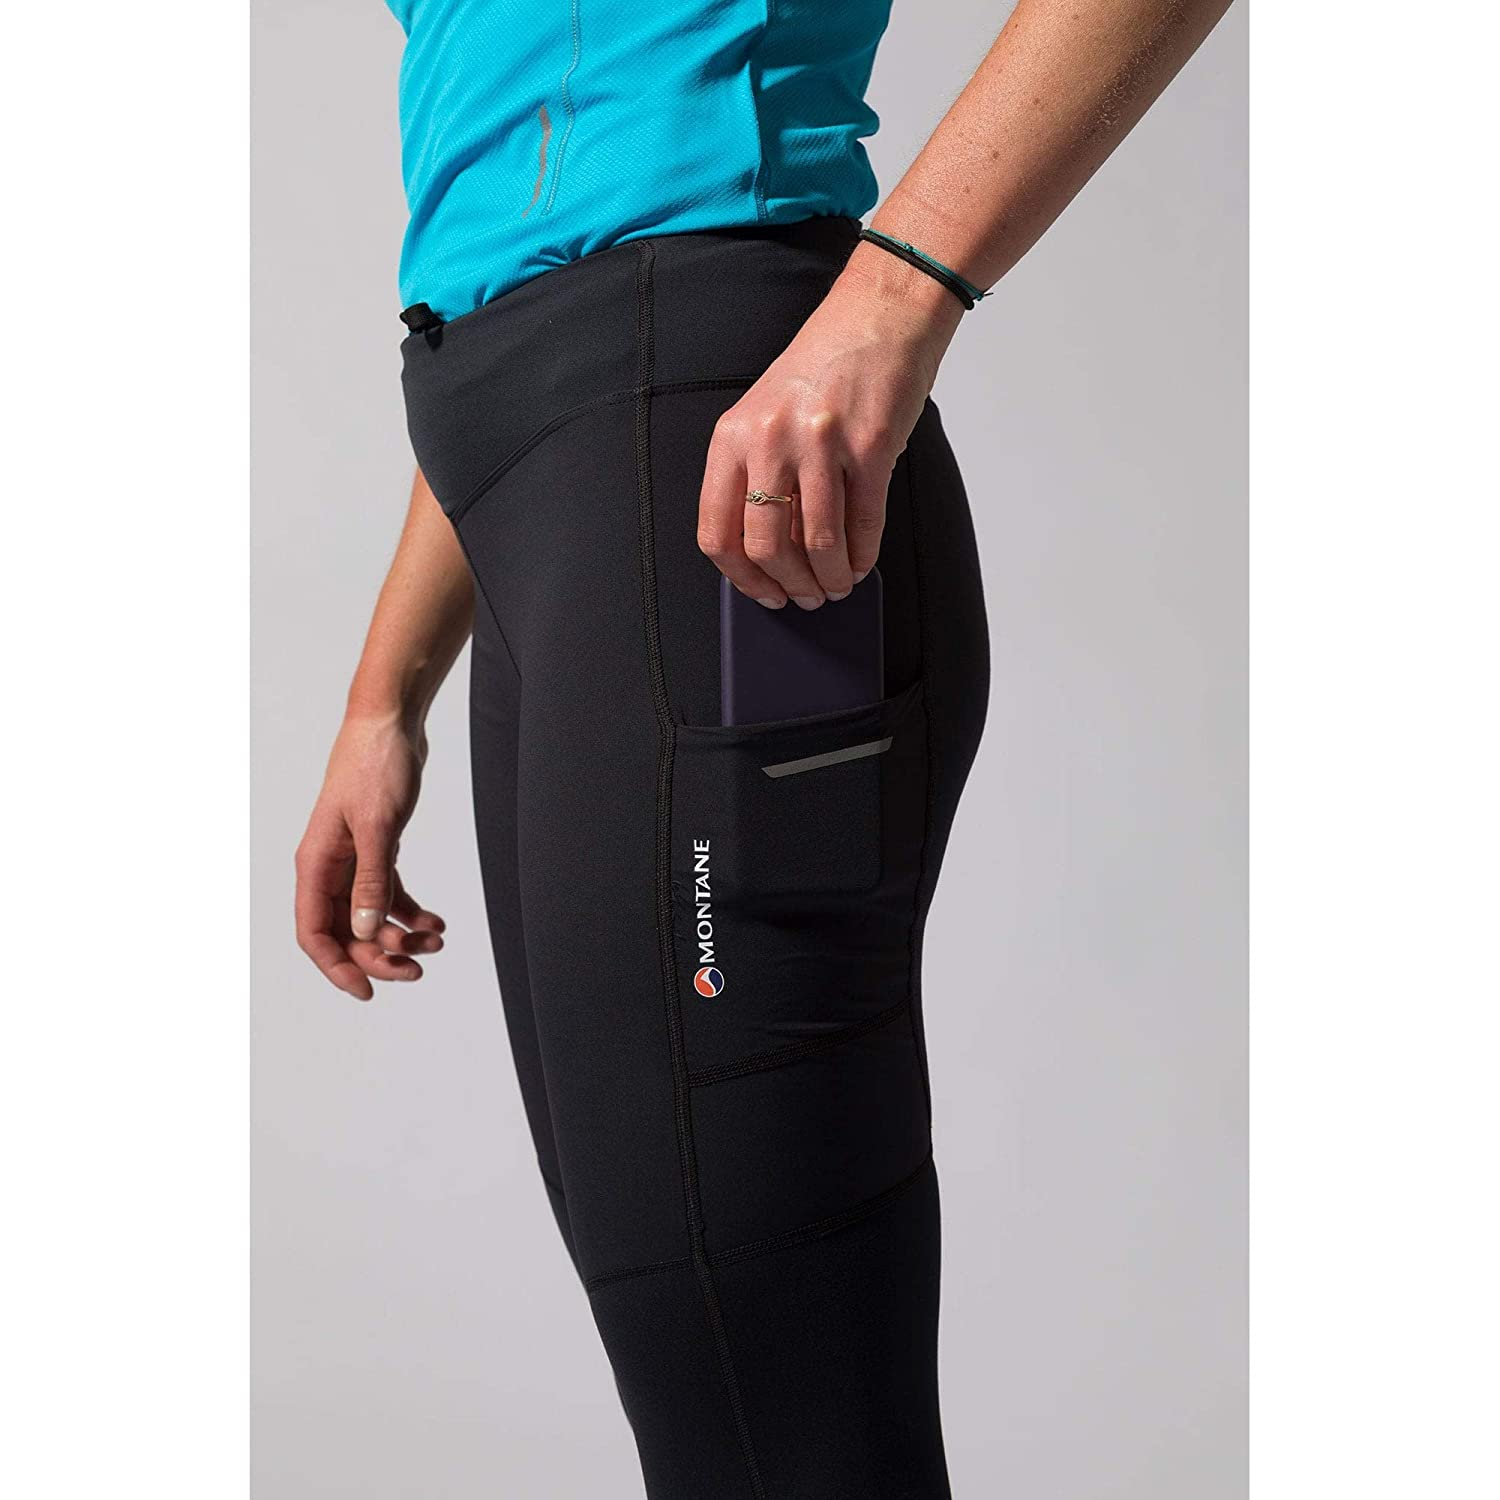 5e7030ffe38bc Montane Women's Trail Series Thermal Tights: Amazon.co.uk: Clothing